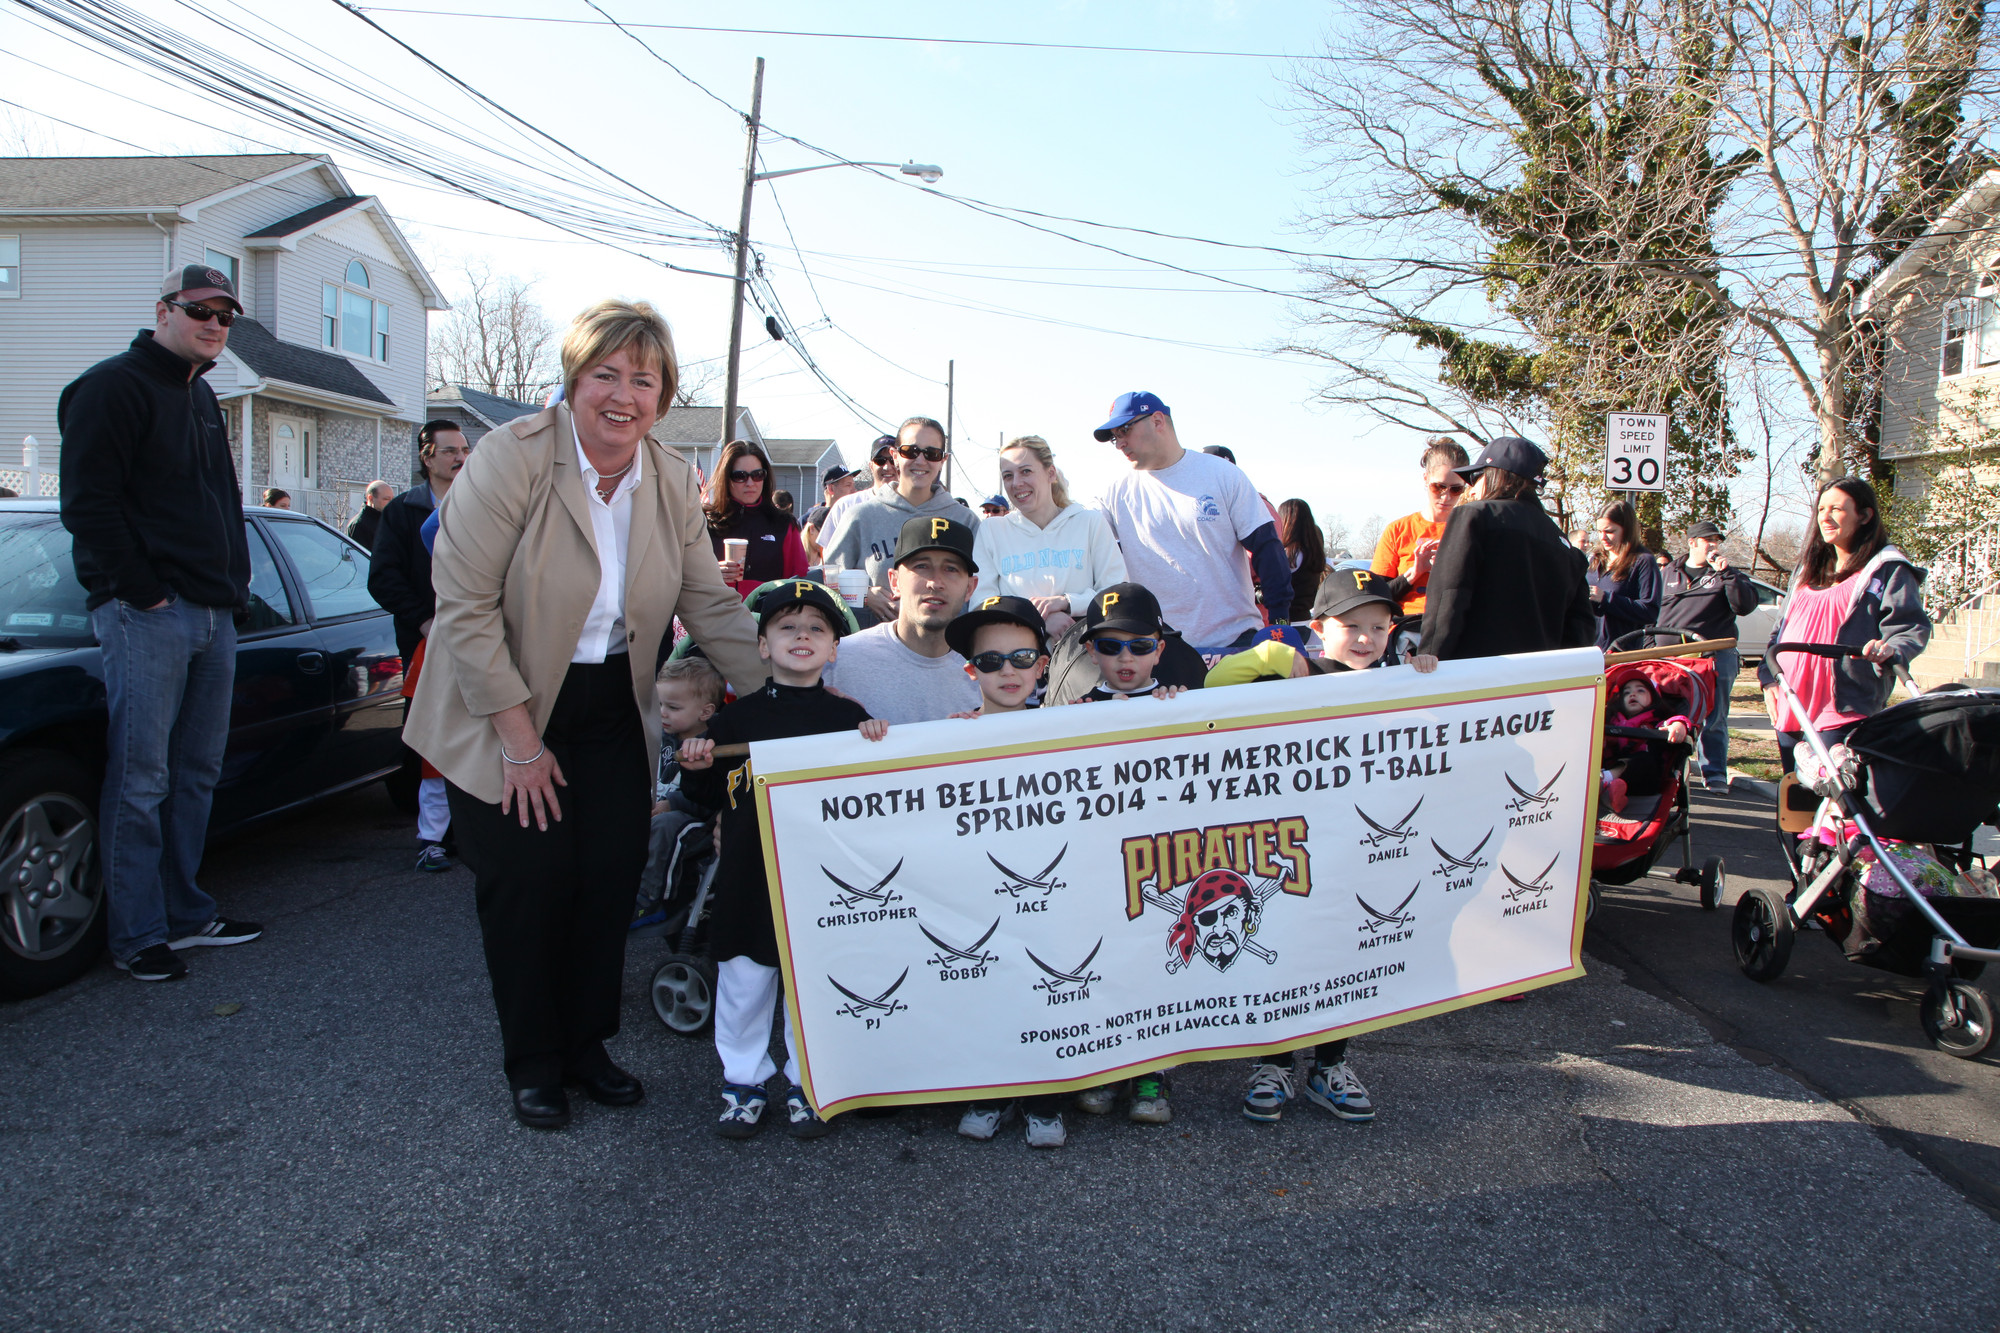 Hempstead Town Supervisor Kate Murray met with the Pirates, a 4-year-old T-ball team, and their coach, Rich LaVacca.